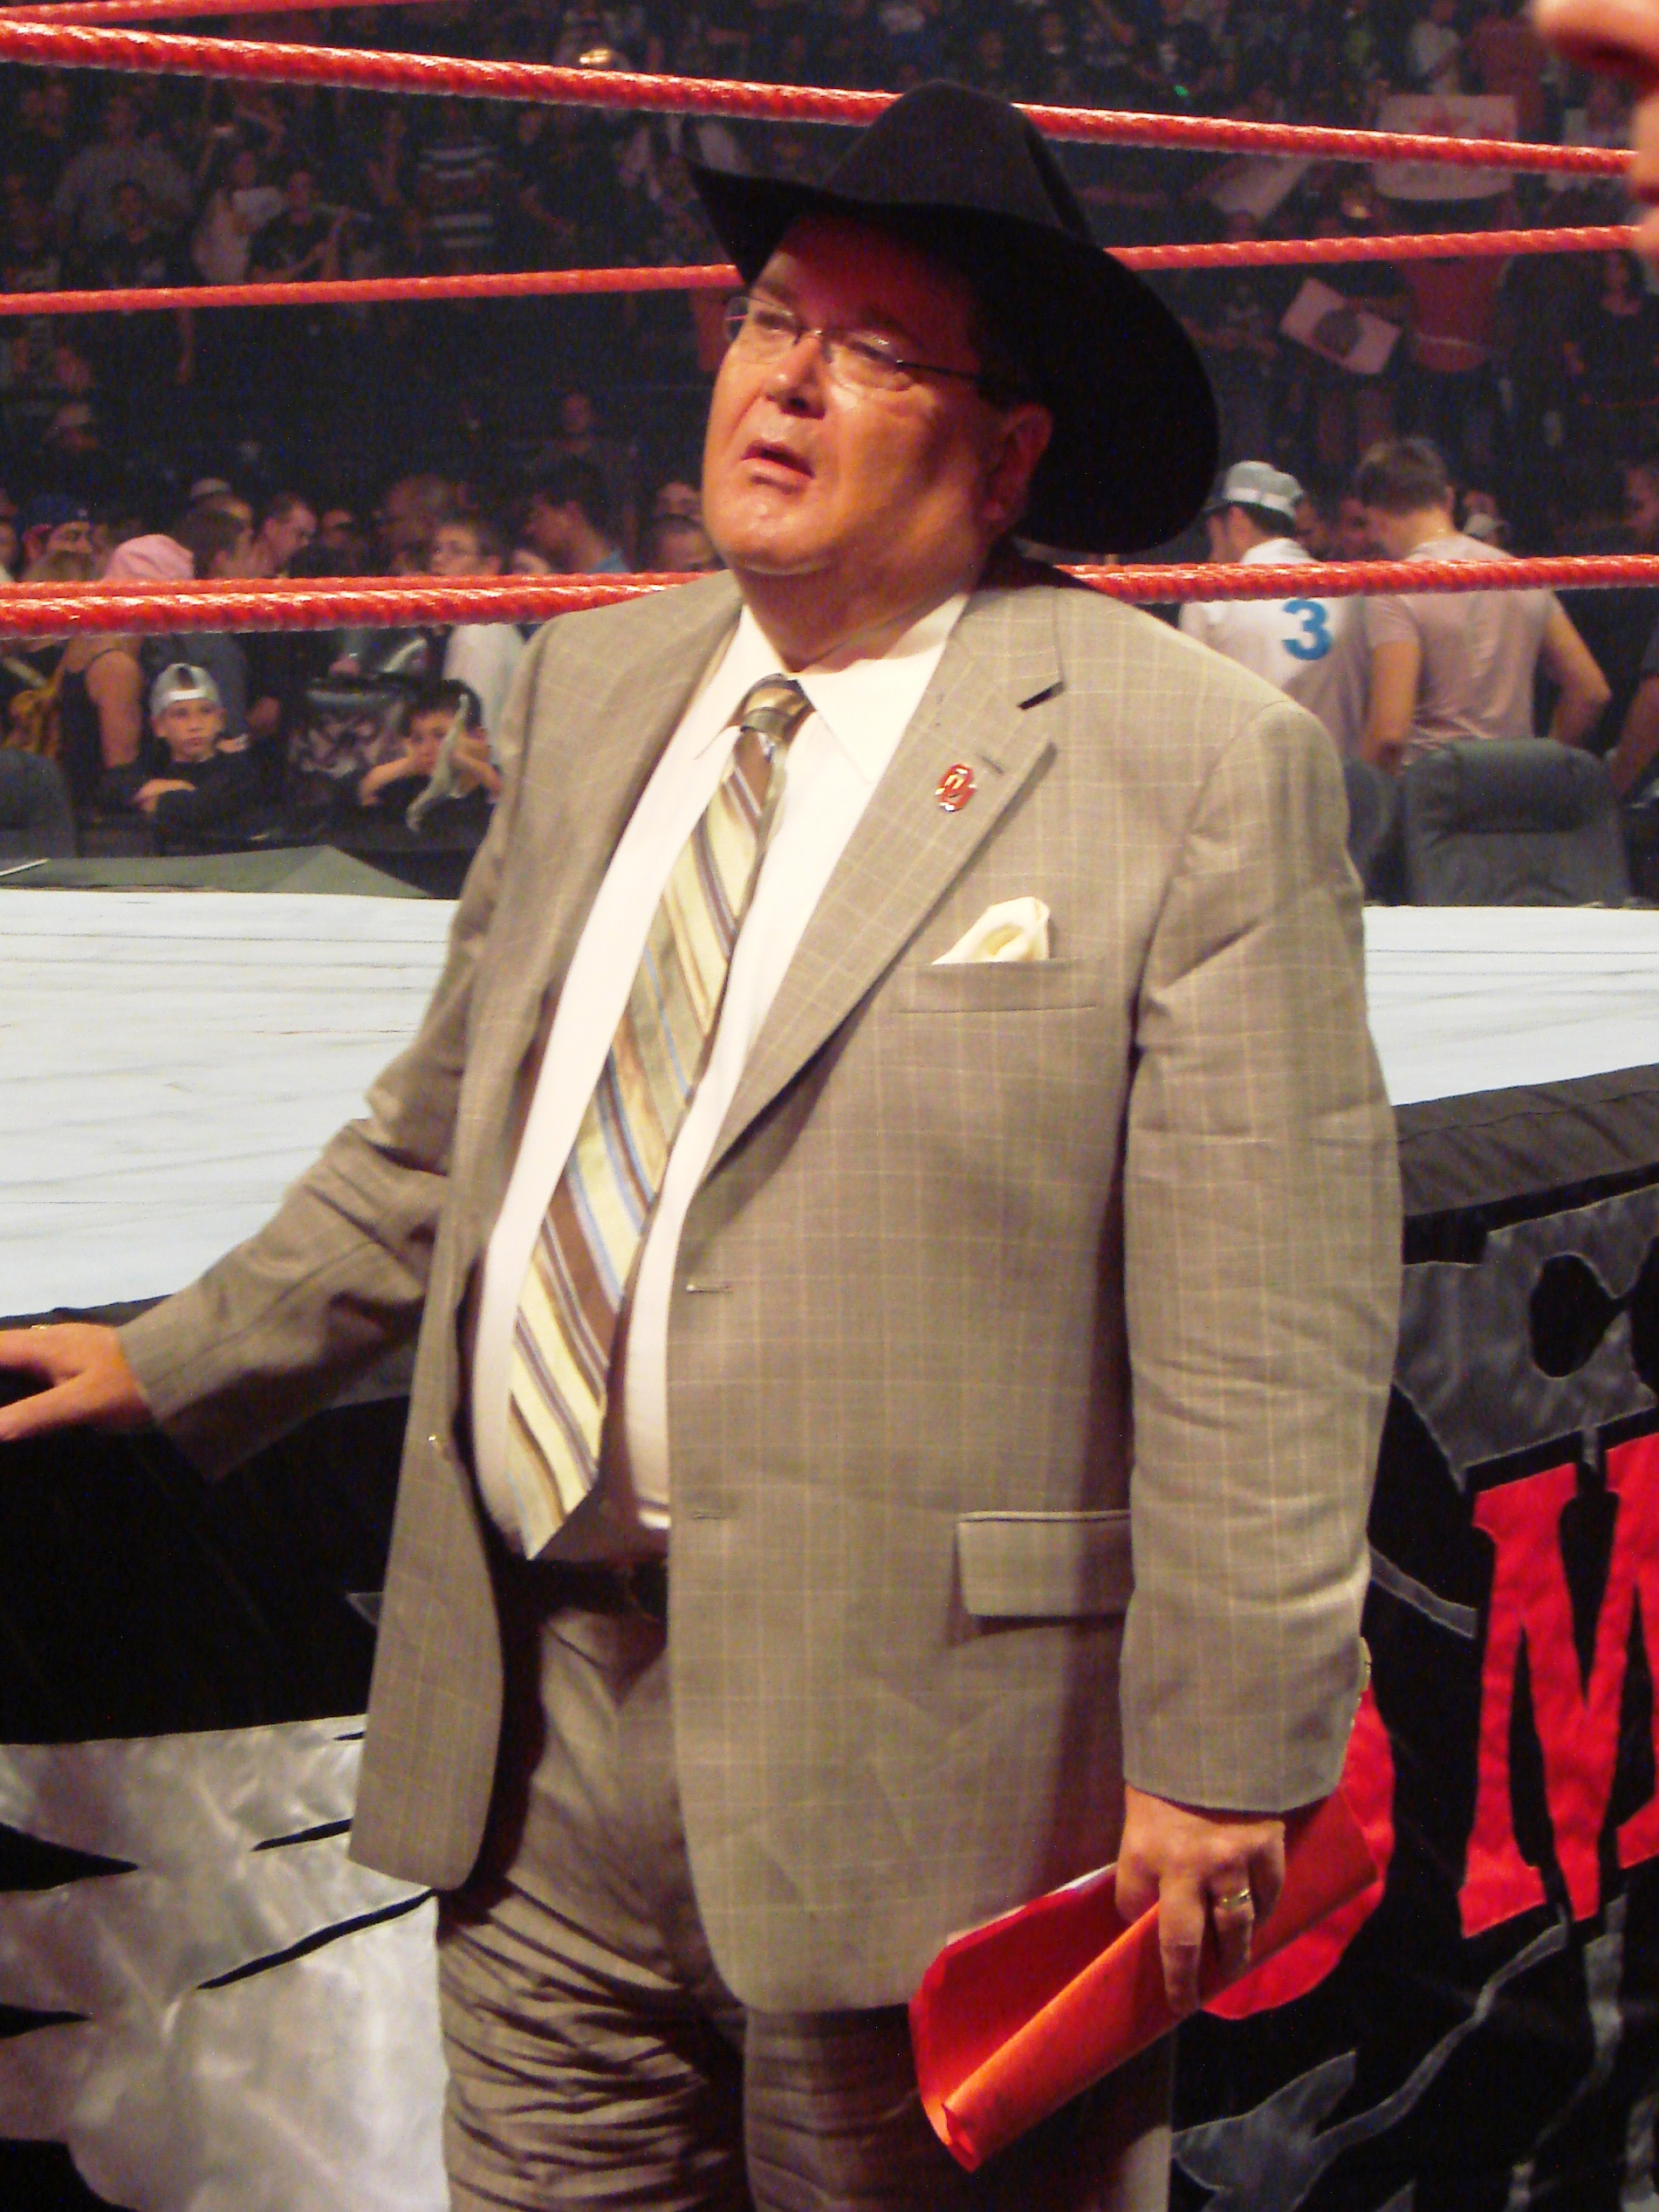 http://upload.wikimedia.org/wikipedia/commons/1/15/Jim_Ross_No_Mercy_2007.jpg